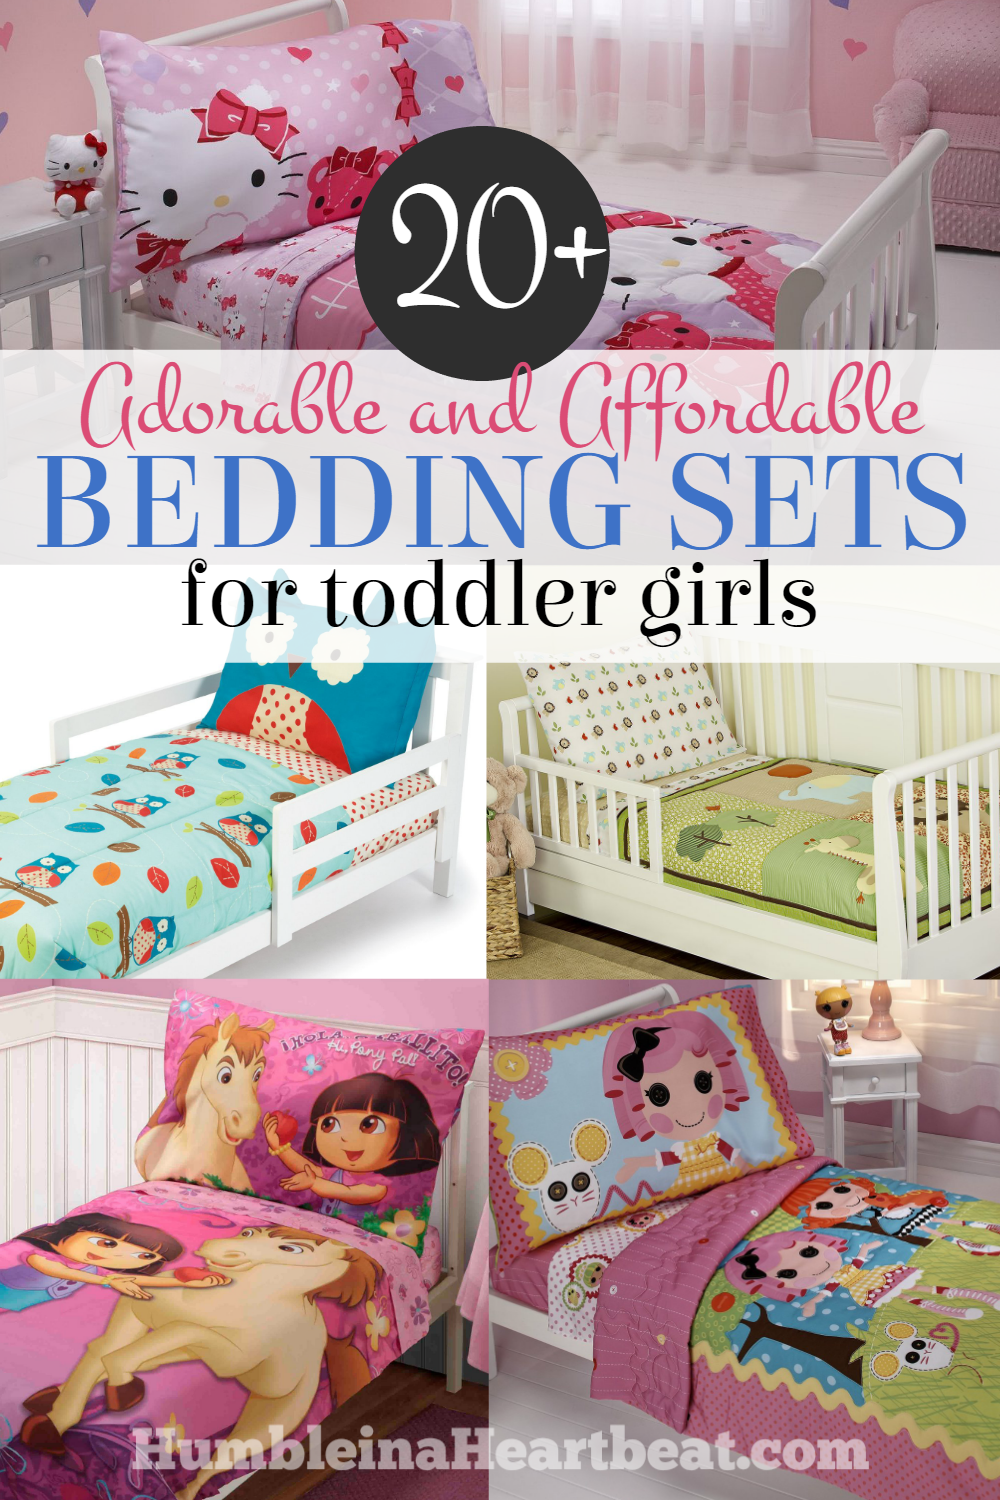 Toddler Bedding Sets for Girls Humble in a Heartbeat